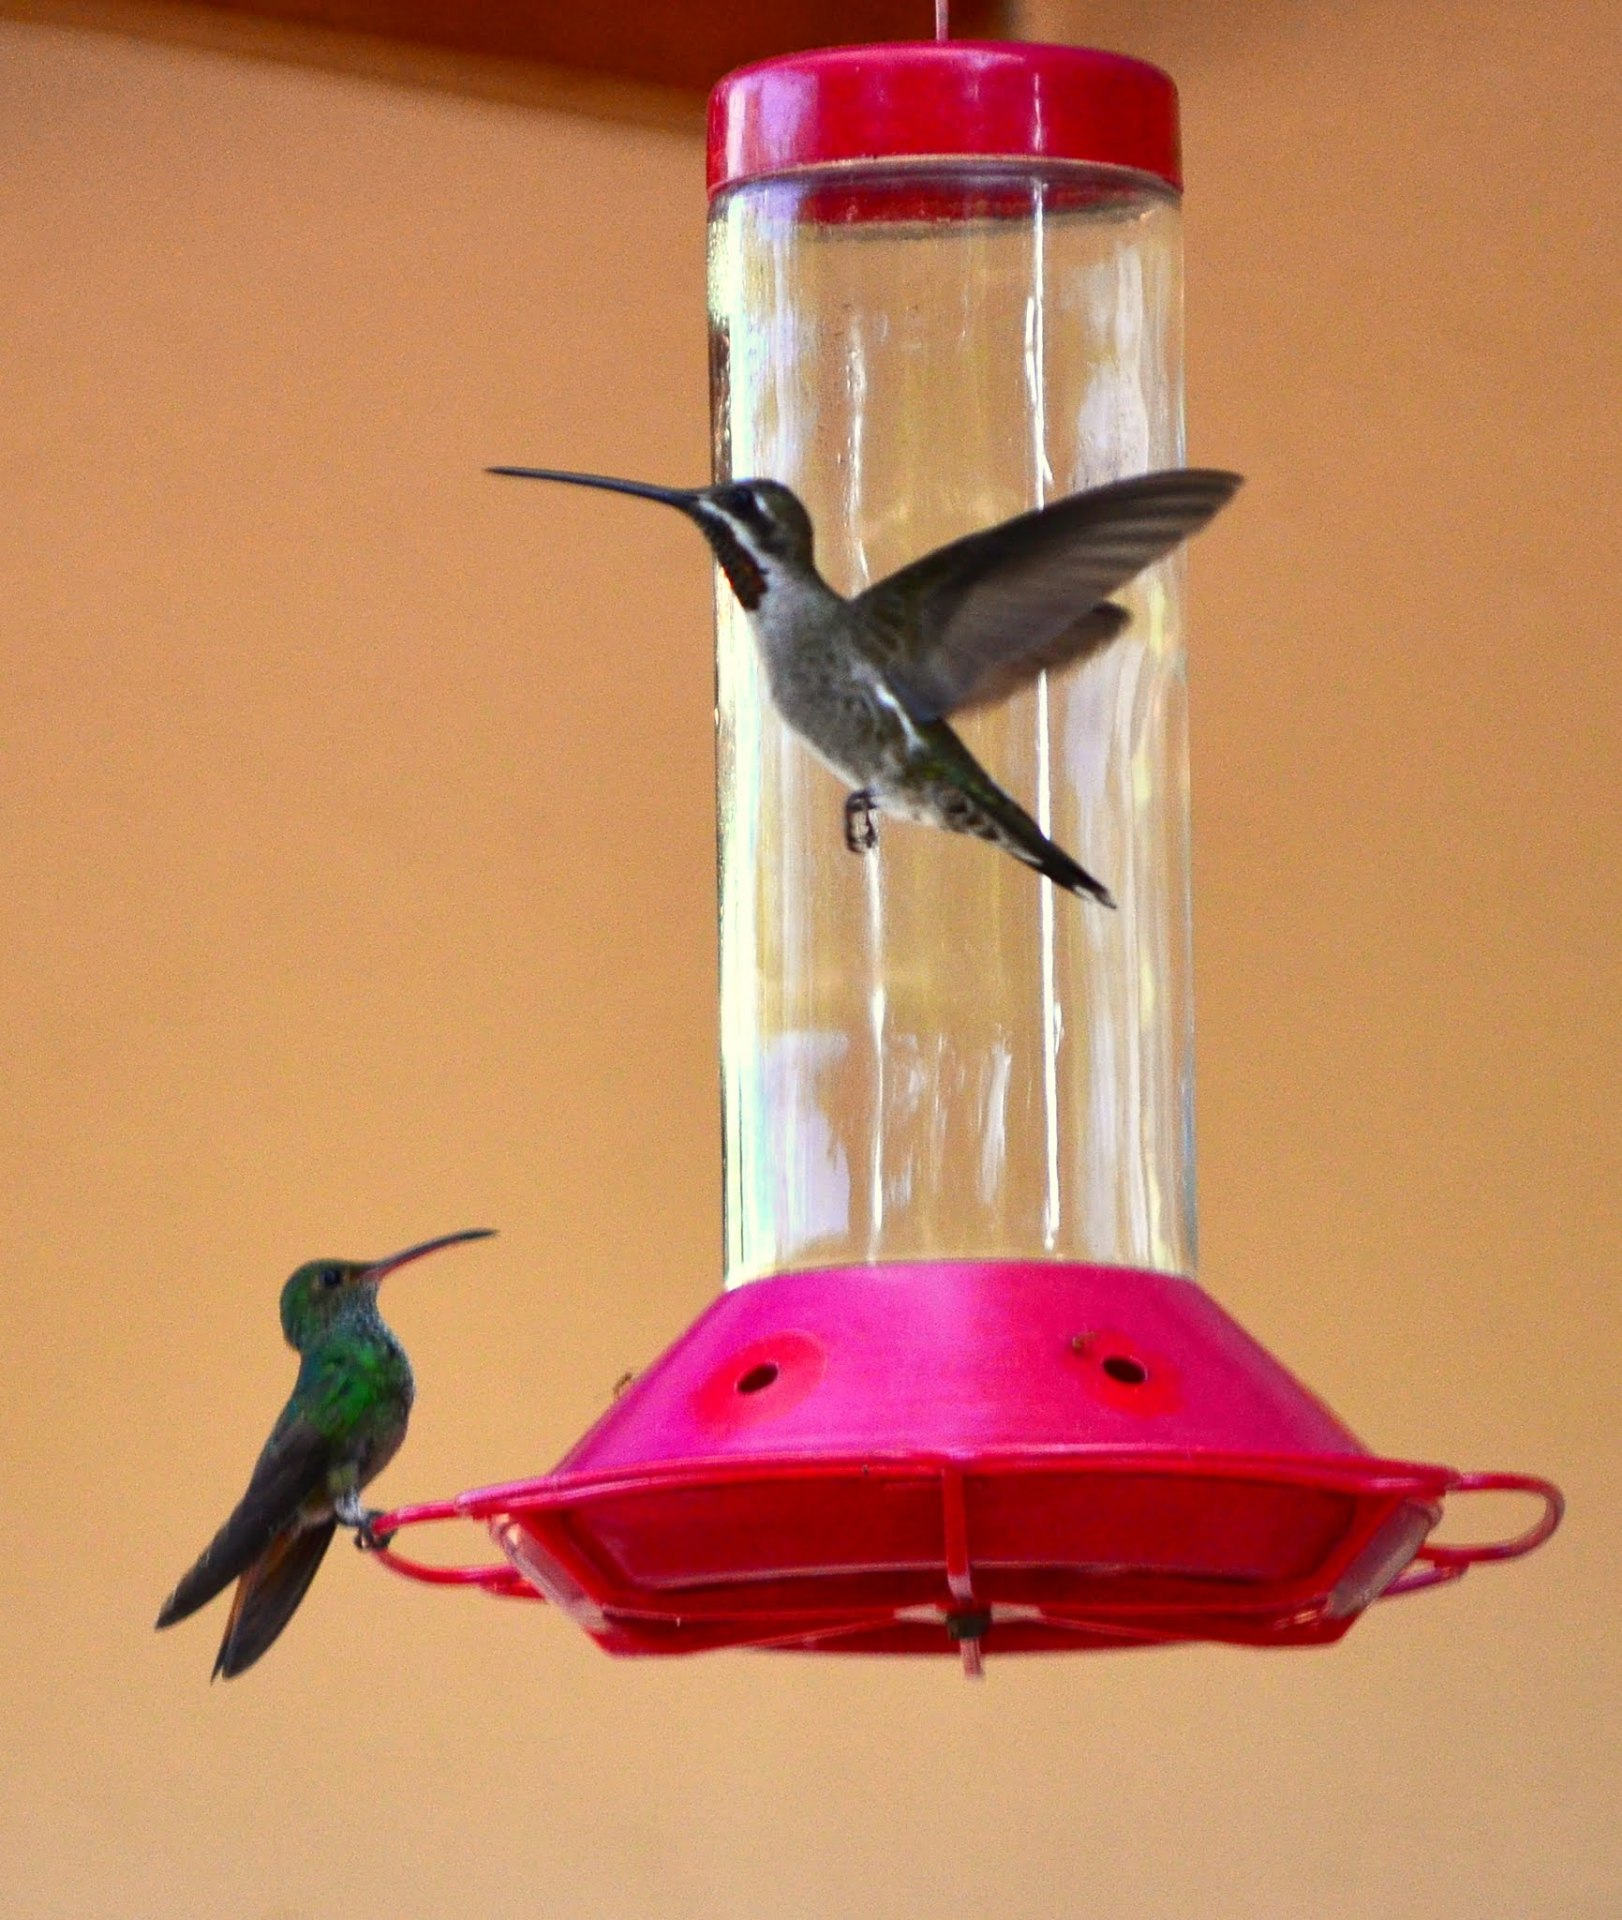 MORE HUMMING BIRDS